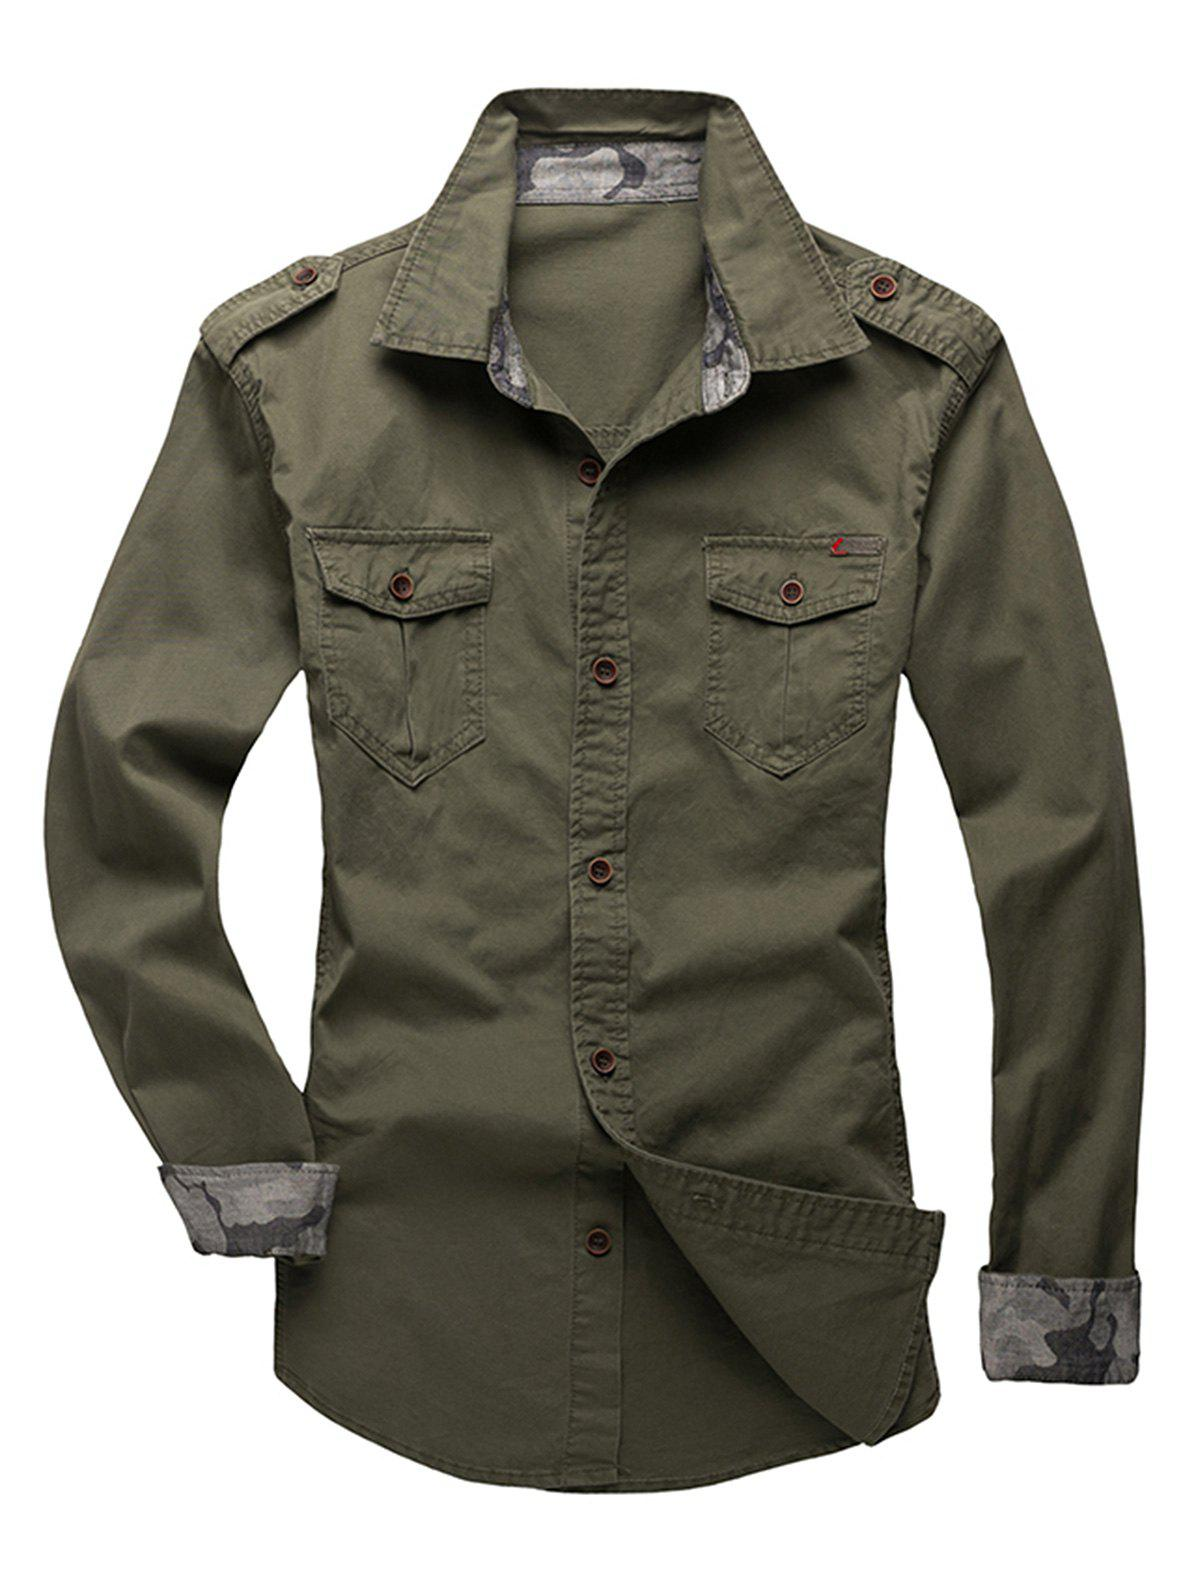 Unique Epaulet Design Fatigue Shirt